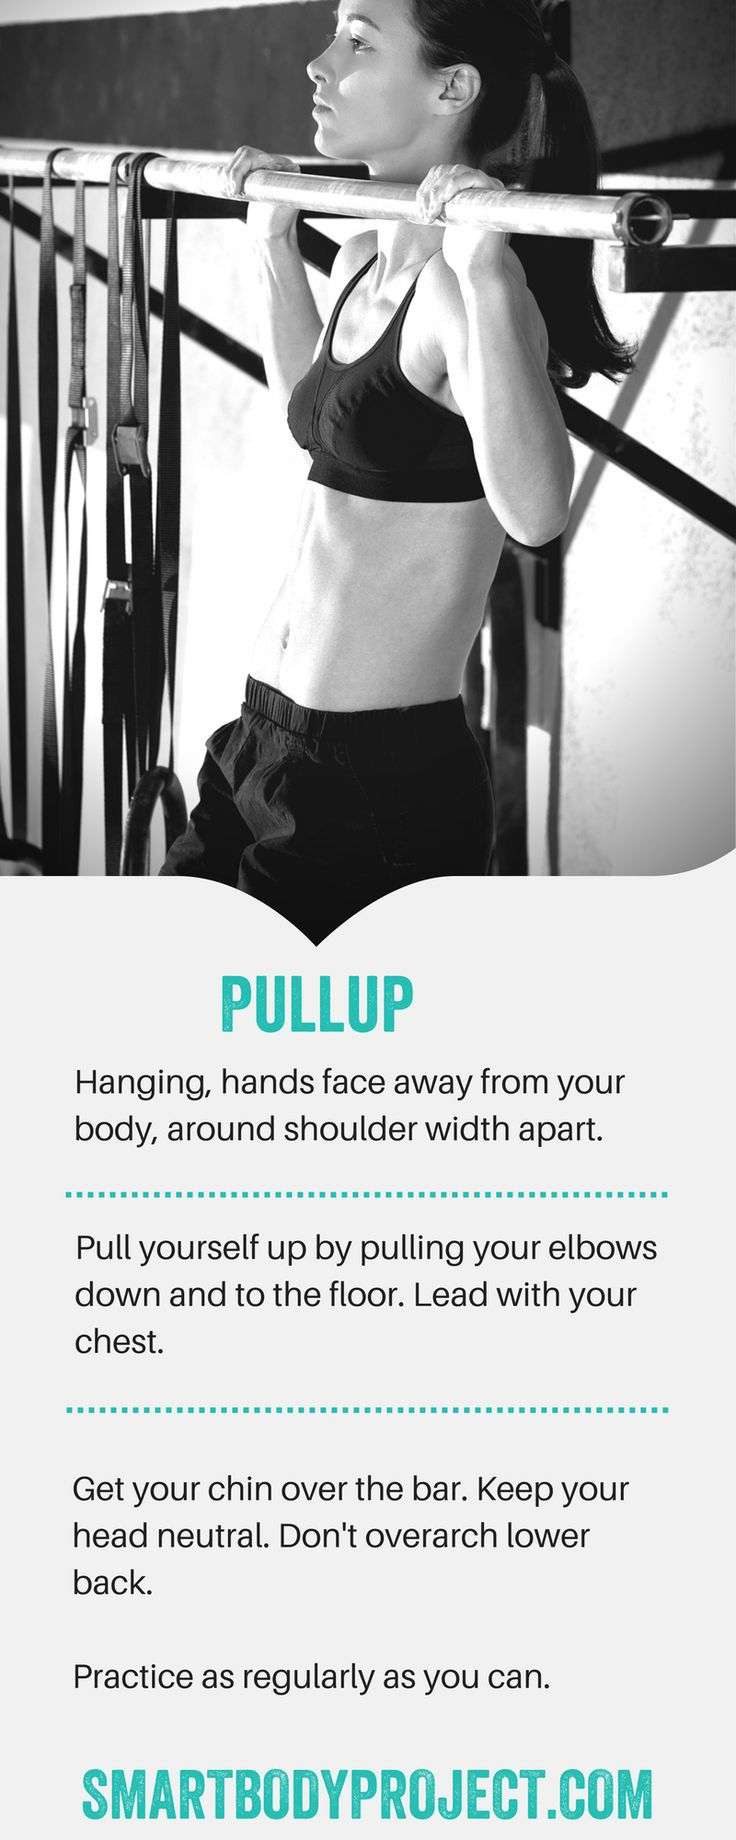 Think you can't do a pull-up or chin-up? Of course you can. You just haven't done one yet.  Rise to the challenge with my 28 Day Perfect Pull-up Program - with a whole-body, four-day split focused on helping you master the perfect pull-up.